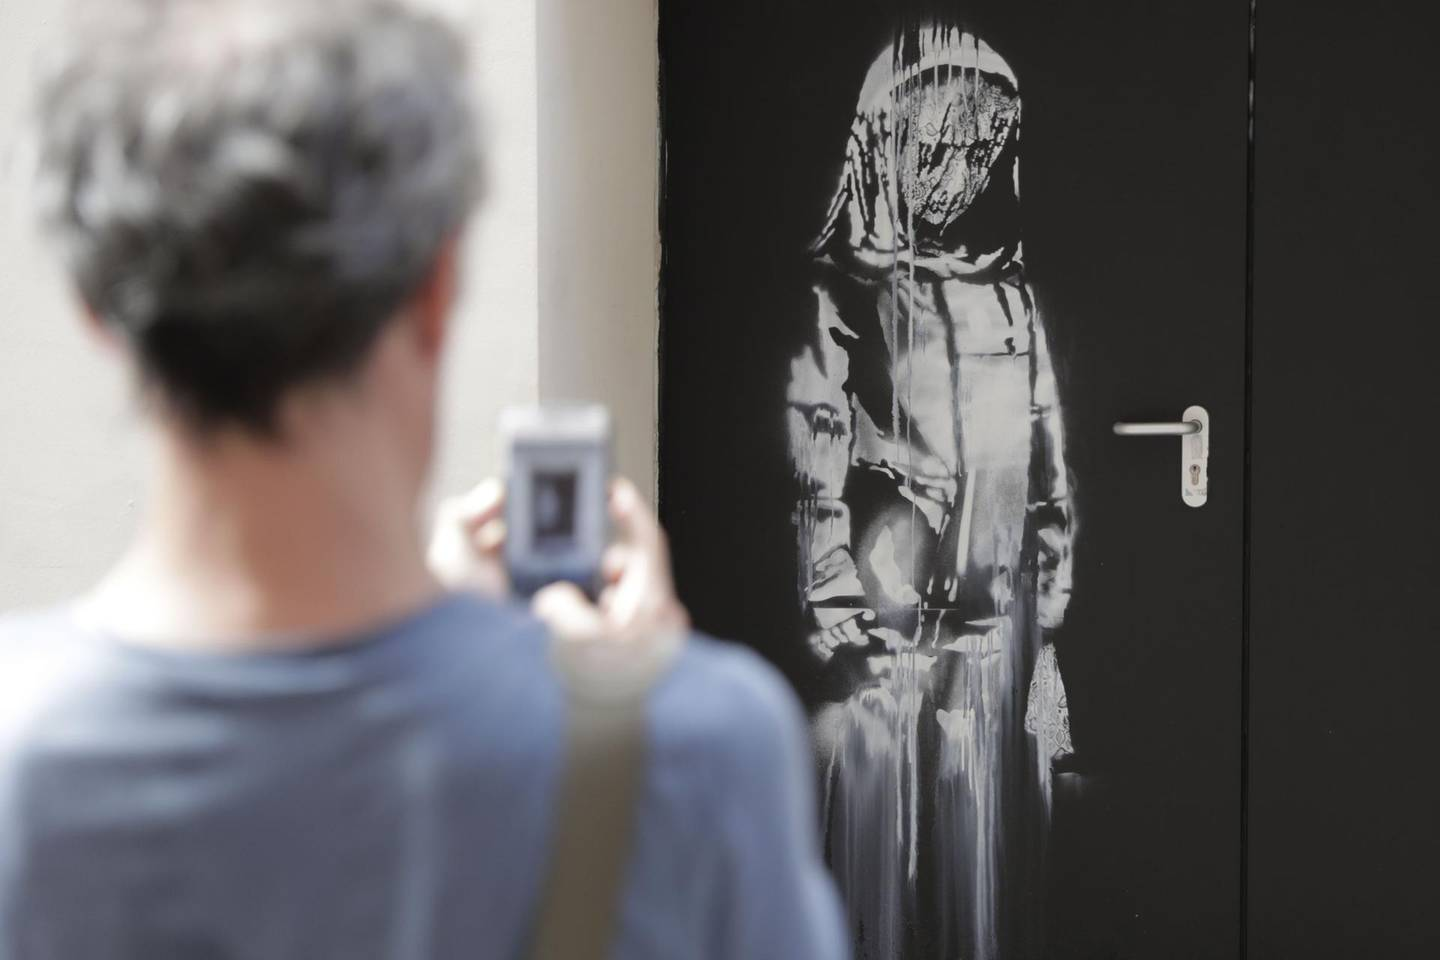 (FILES) In this file photo taken on June 25, 2018 a man takes a photograph of an artwork by street artist Banksy in Paris on a side street to the Bataclan concert hall where a terrorist attack killed 90 people on Novembre 13, 2015. The stolen Banksy work has been found in Italy, AFP reports on June 10, 2020.  - RESTRICTED TO EDITORIAL USE - MANDATORY MENTION OF THE ARTIST UPON PUBLICATION - TO ILLUSTRATE THE EVENT AS SPECIFIED IN THE CAPTION  / AFP / Thomas SAMSON / RESTRICTED TO EDITORIAL USE - MANDATORY MENTION OF THE ARTIST UPON PUBLICATION - TO ILLUSTRATE THE EVENT AS SPECIFIED IN THE CAPTION